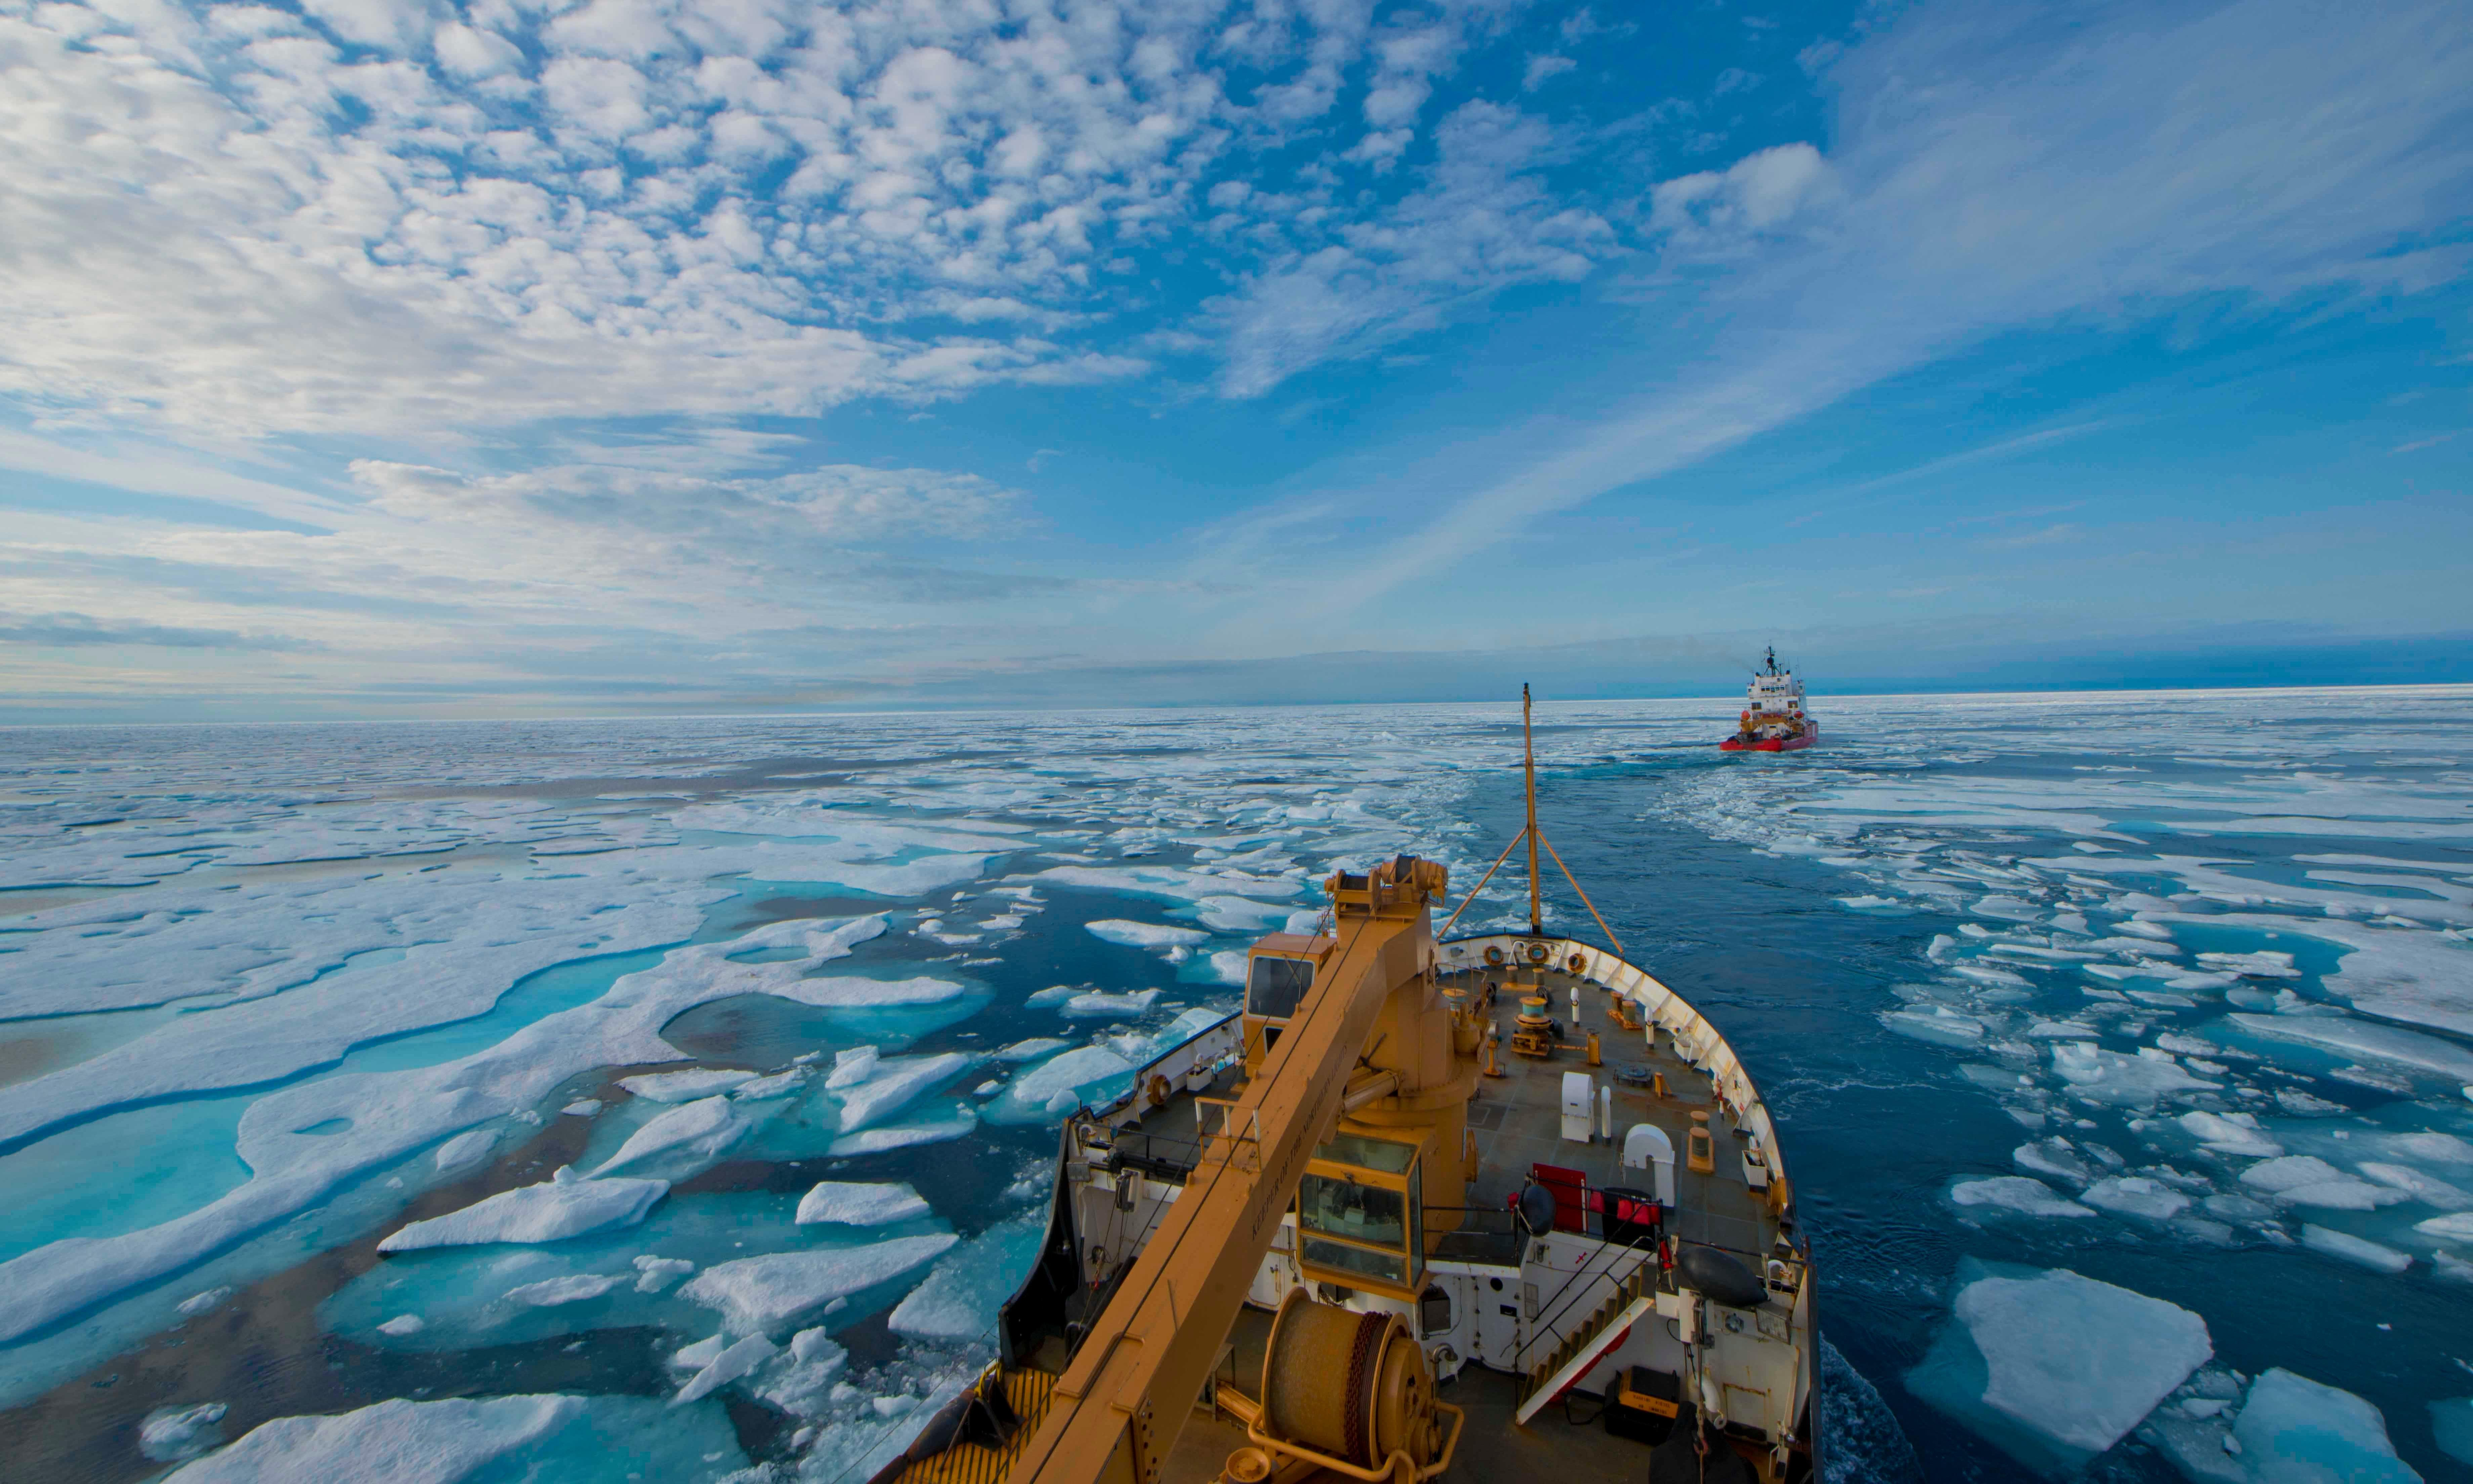 Commercial fishing banned across much of the Arctic